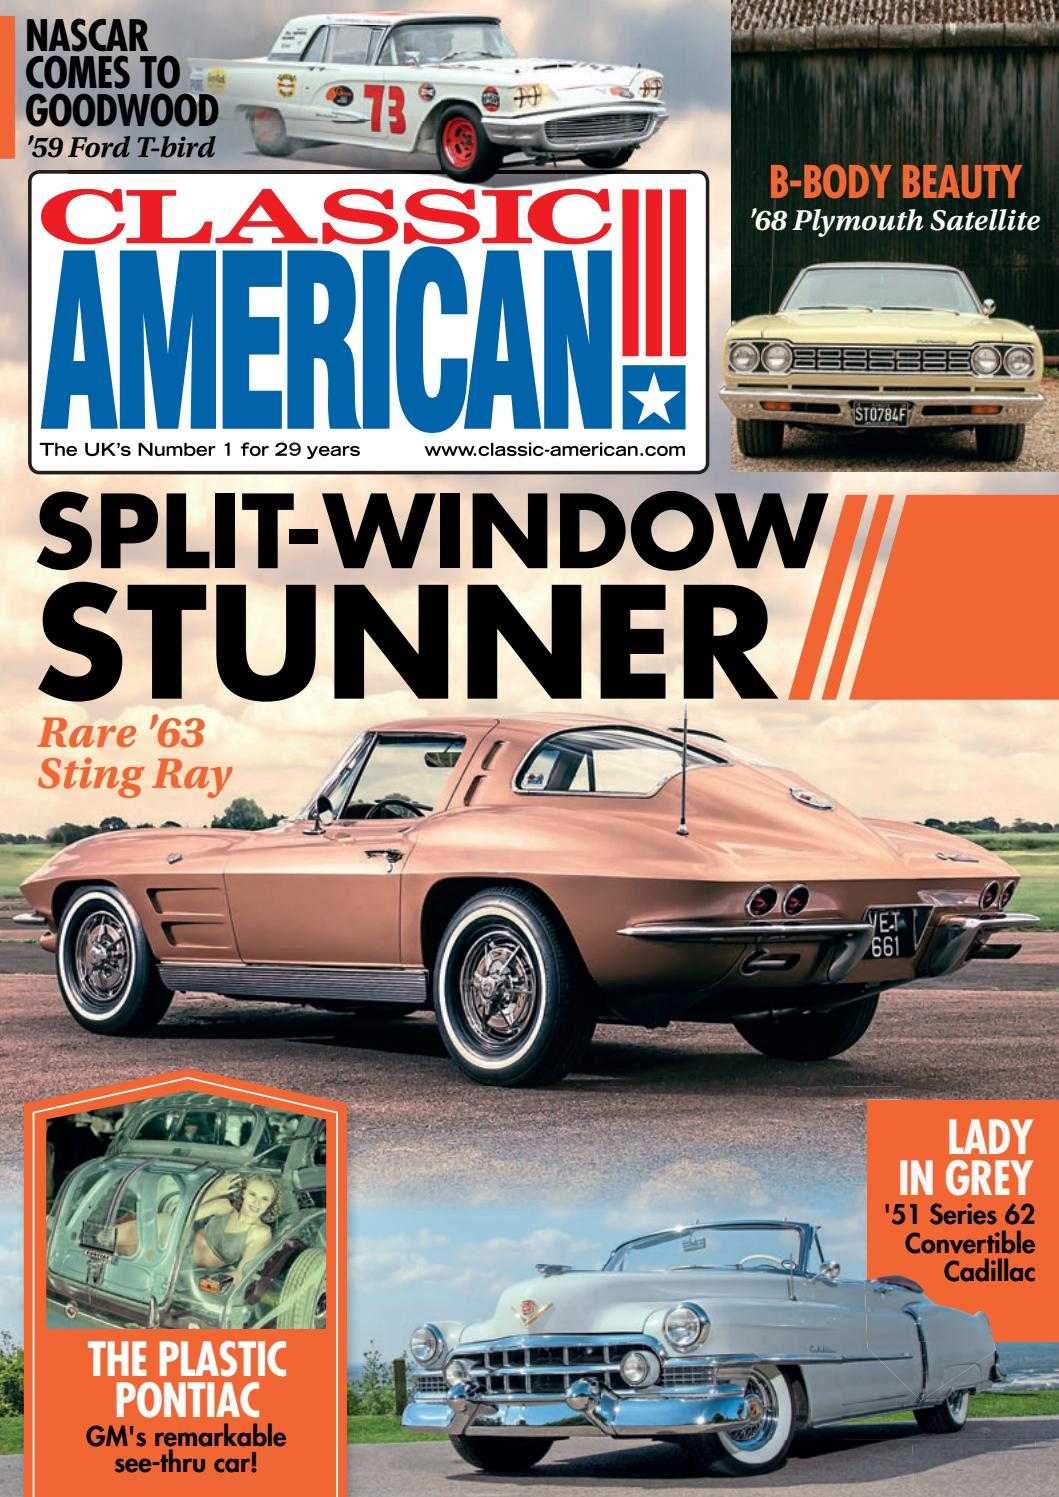 Classic American December 2017 by Mortons Media Group Ltd - issuu